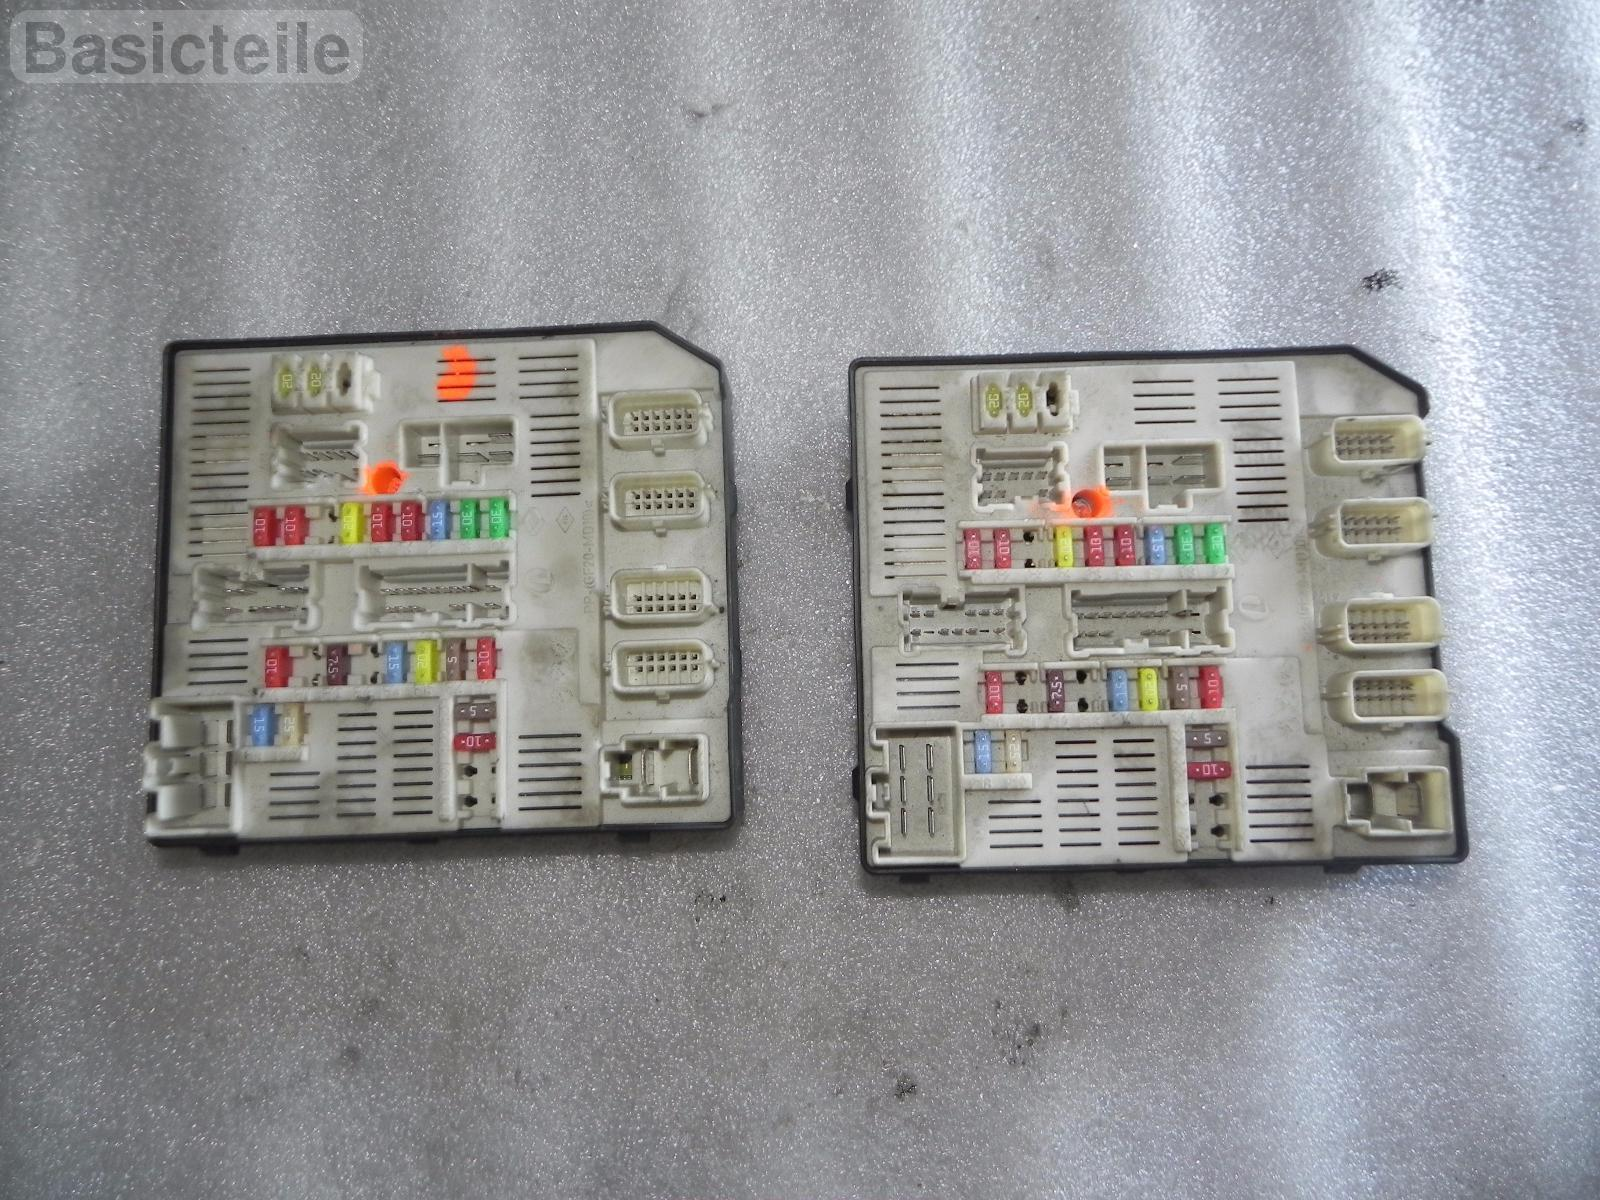 roush f150 fuse box cover renault laguna fuse box cover | wiring library renault laguna fuse box cover